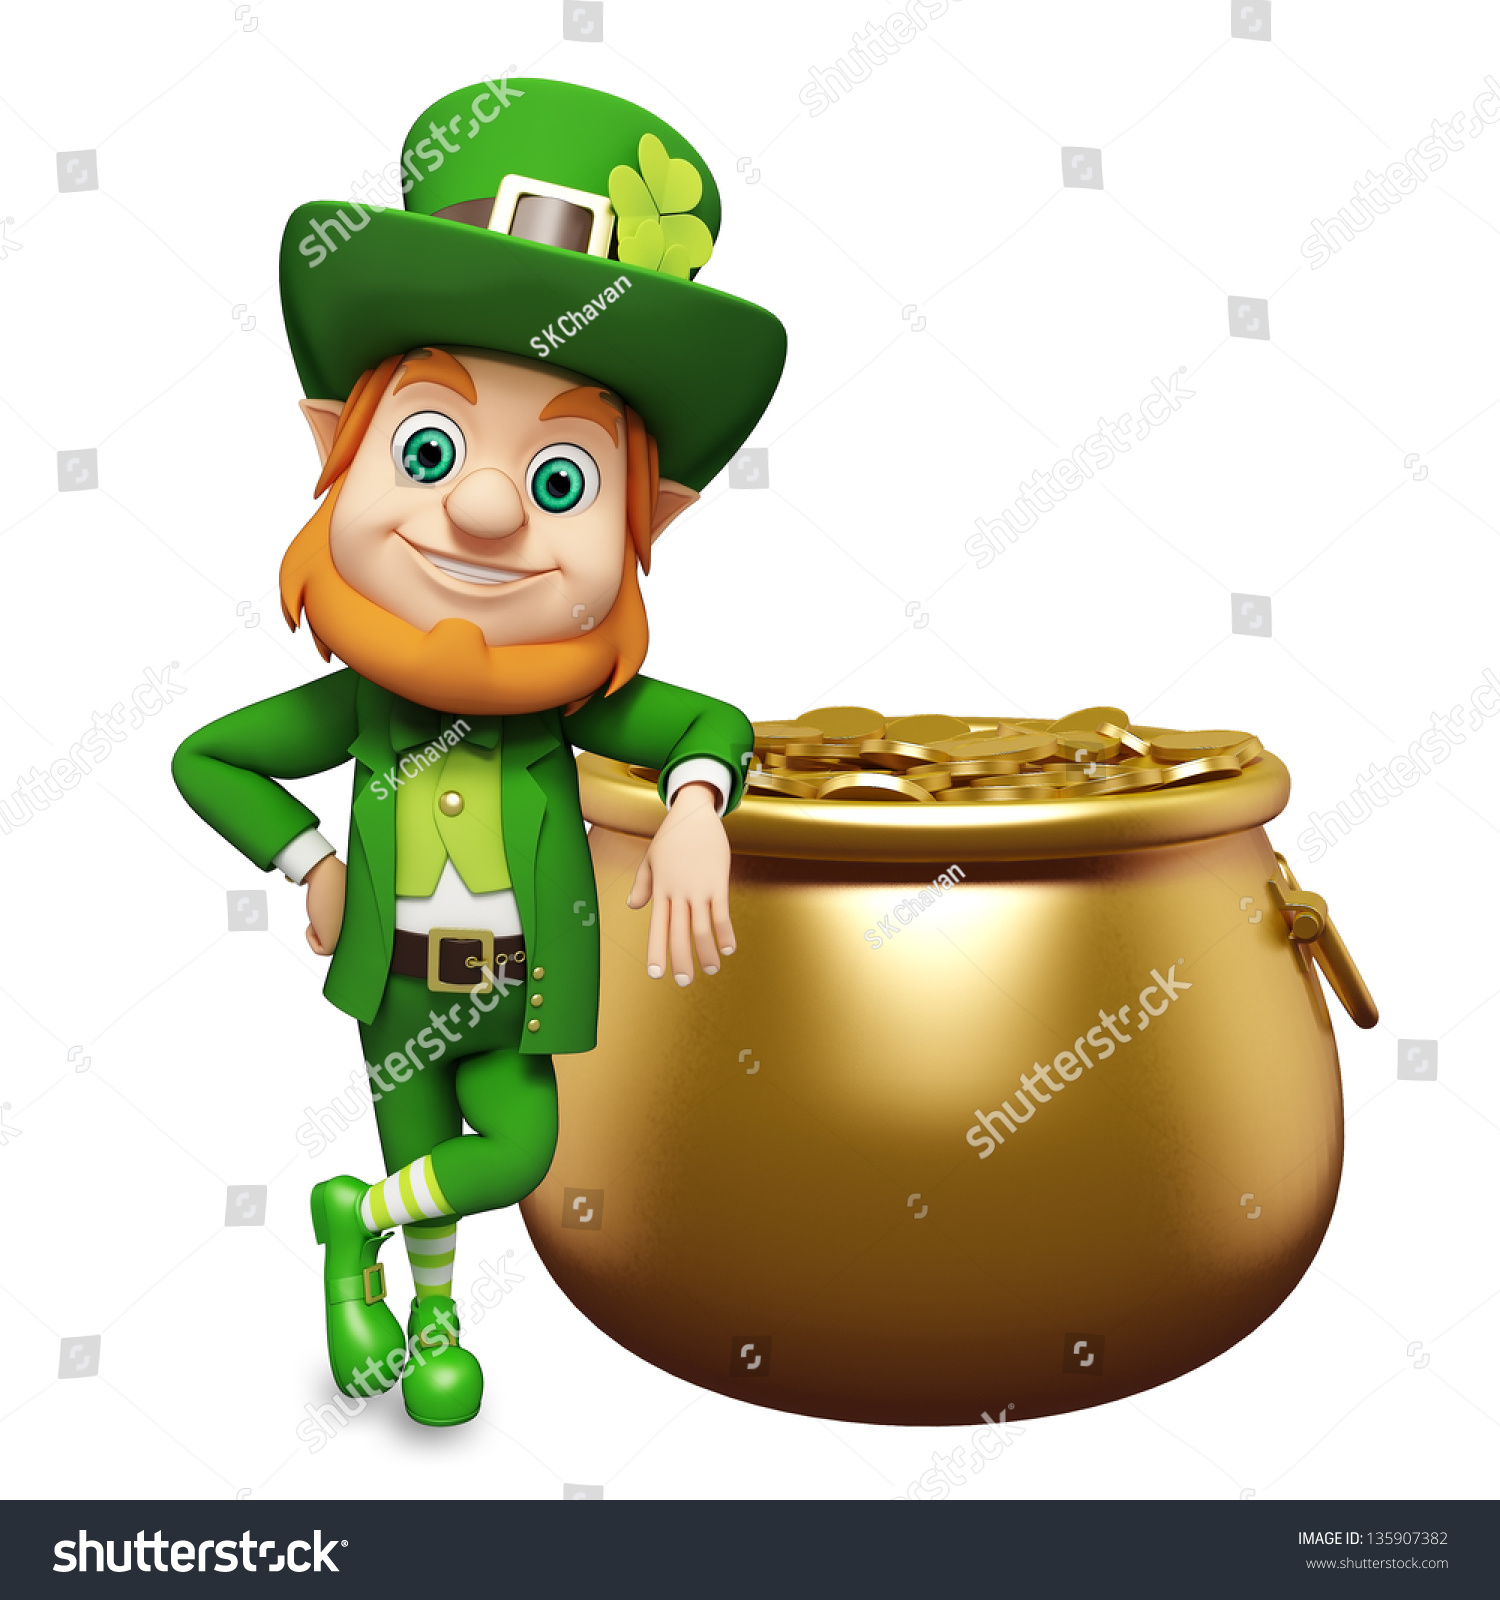 leprechaun golden coins pot st patrick stock illustration